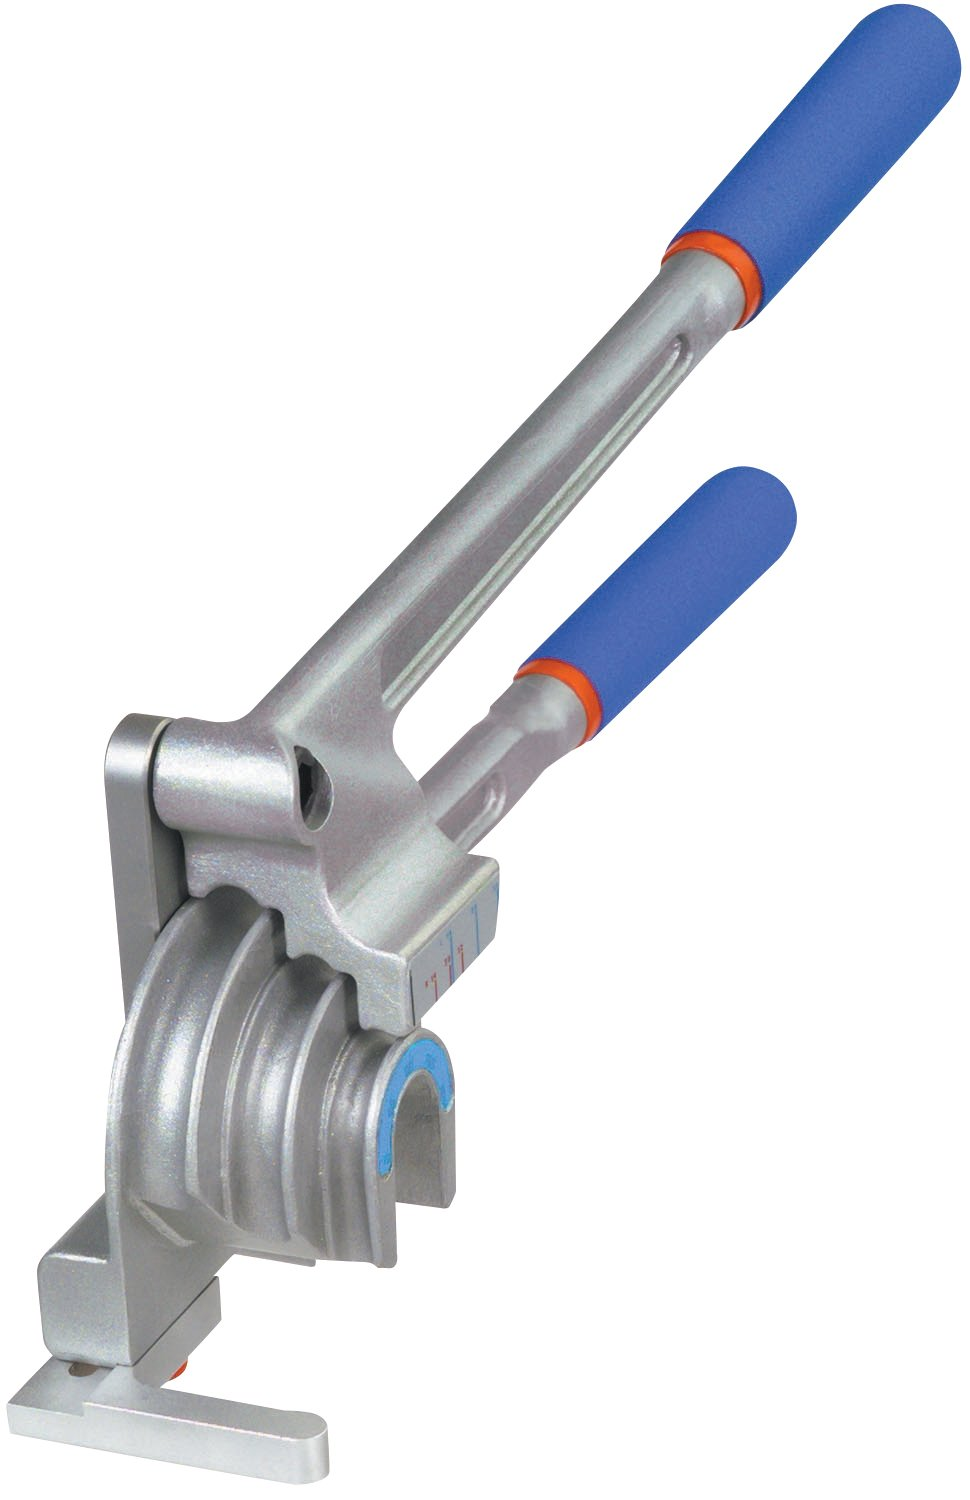 Imperial Stride Tool 370-FHC 3/16', 1/4', 3/8', 1/2', Alum, Copper, Steel Triple Header 180 degree Benders, Silver/Blue 1/4 3/8 1/2